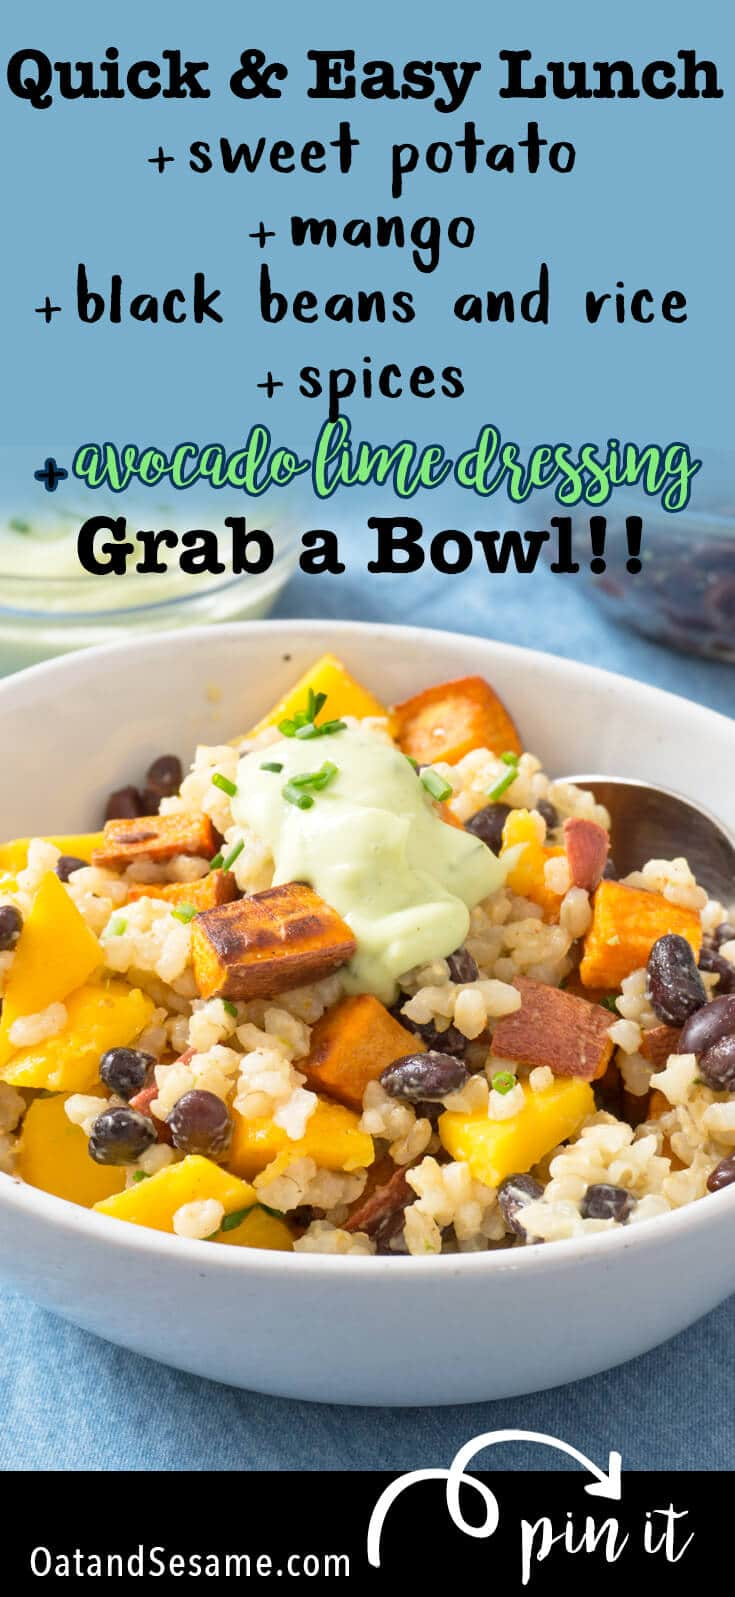 Have you ever tried Avocado Brown Rice? It's rice mixed with a creamy avocado sauce and it's delicious just by itself. For this easy meal prep recipe, avocado brown rice is tossed with roast sweet potatoes, fresh mango, and black beans for a tropical, packable lunch. | #LUNCH | #VEGETARIAN | #MEALPREP | #Recipes at OatandSesame.com